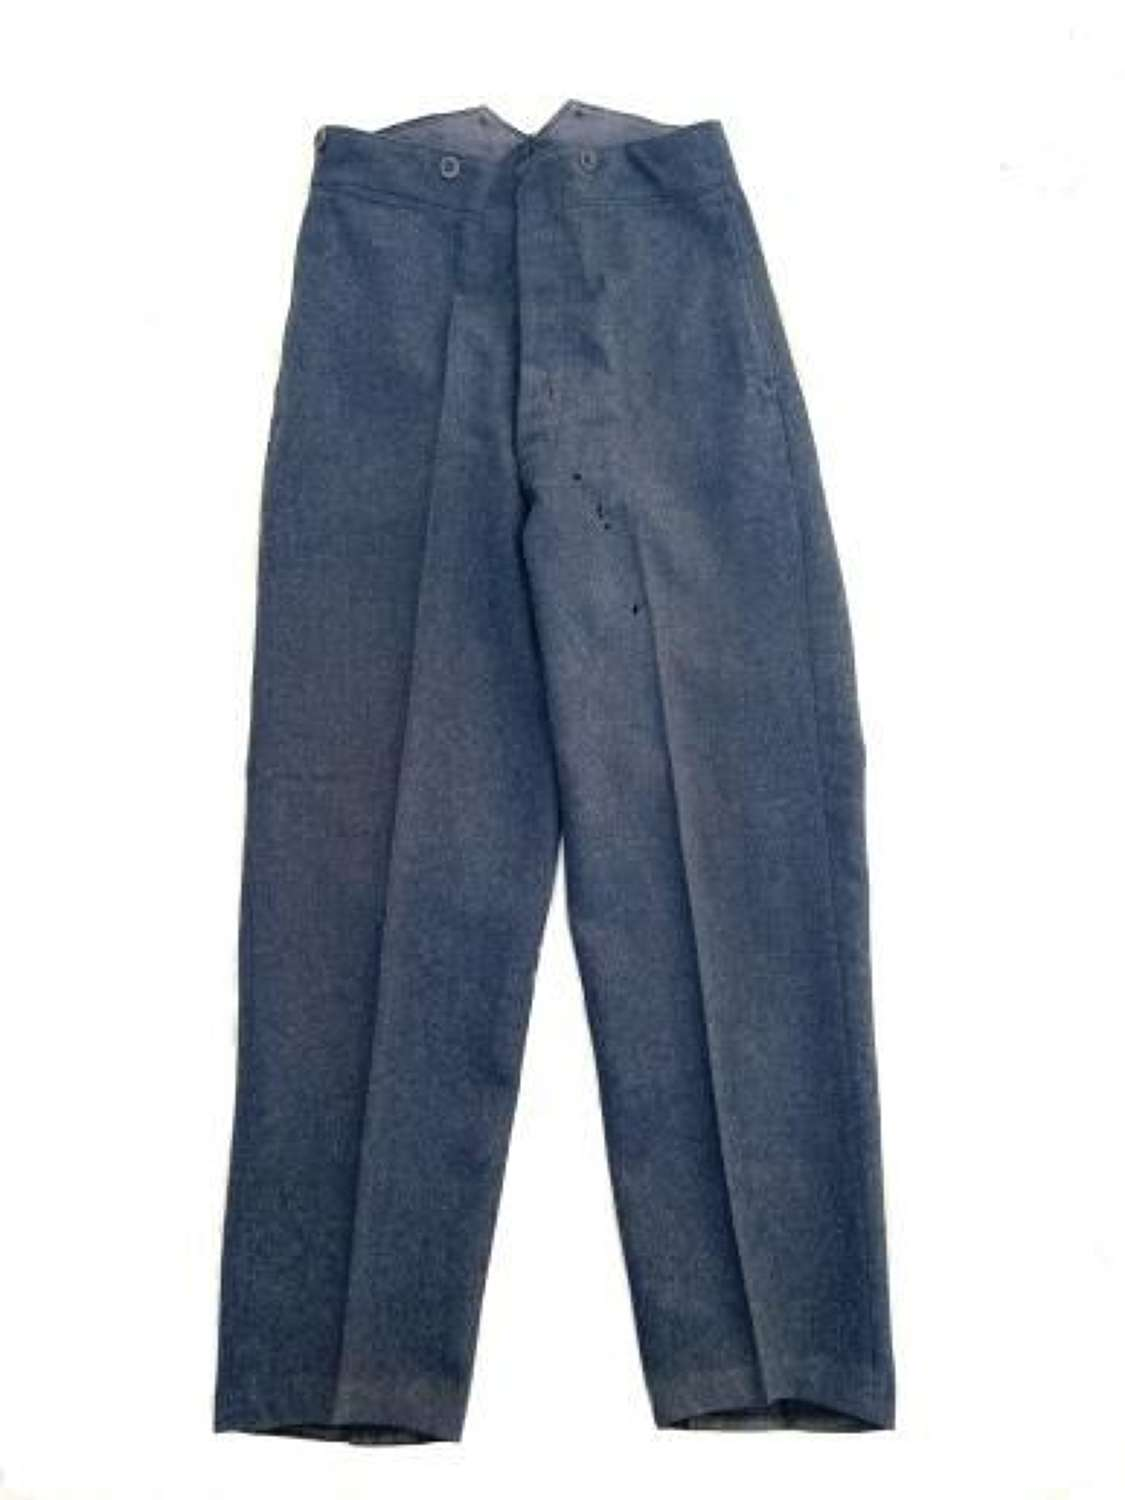 Original 1949 Dated RAF Ordinary Airman's Trousers - Size No 21